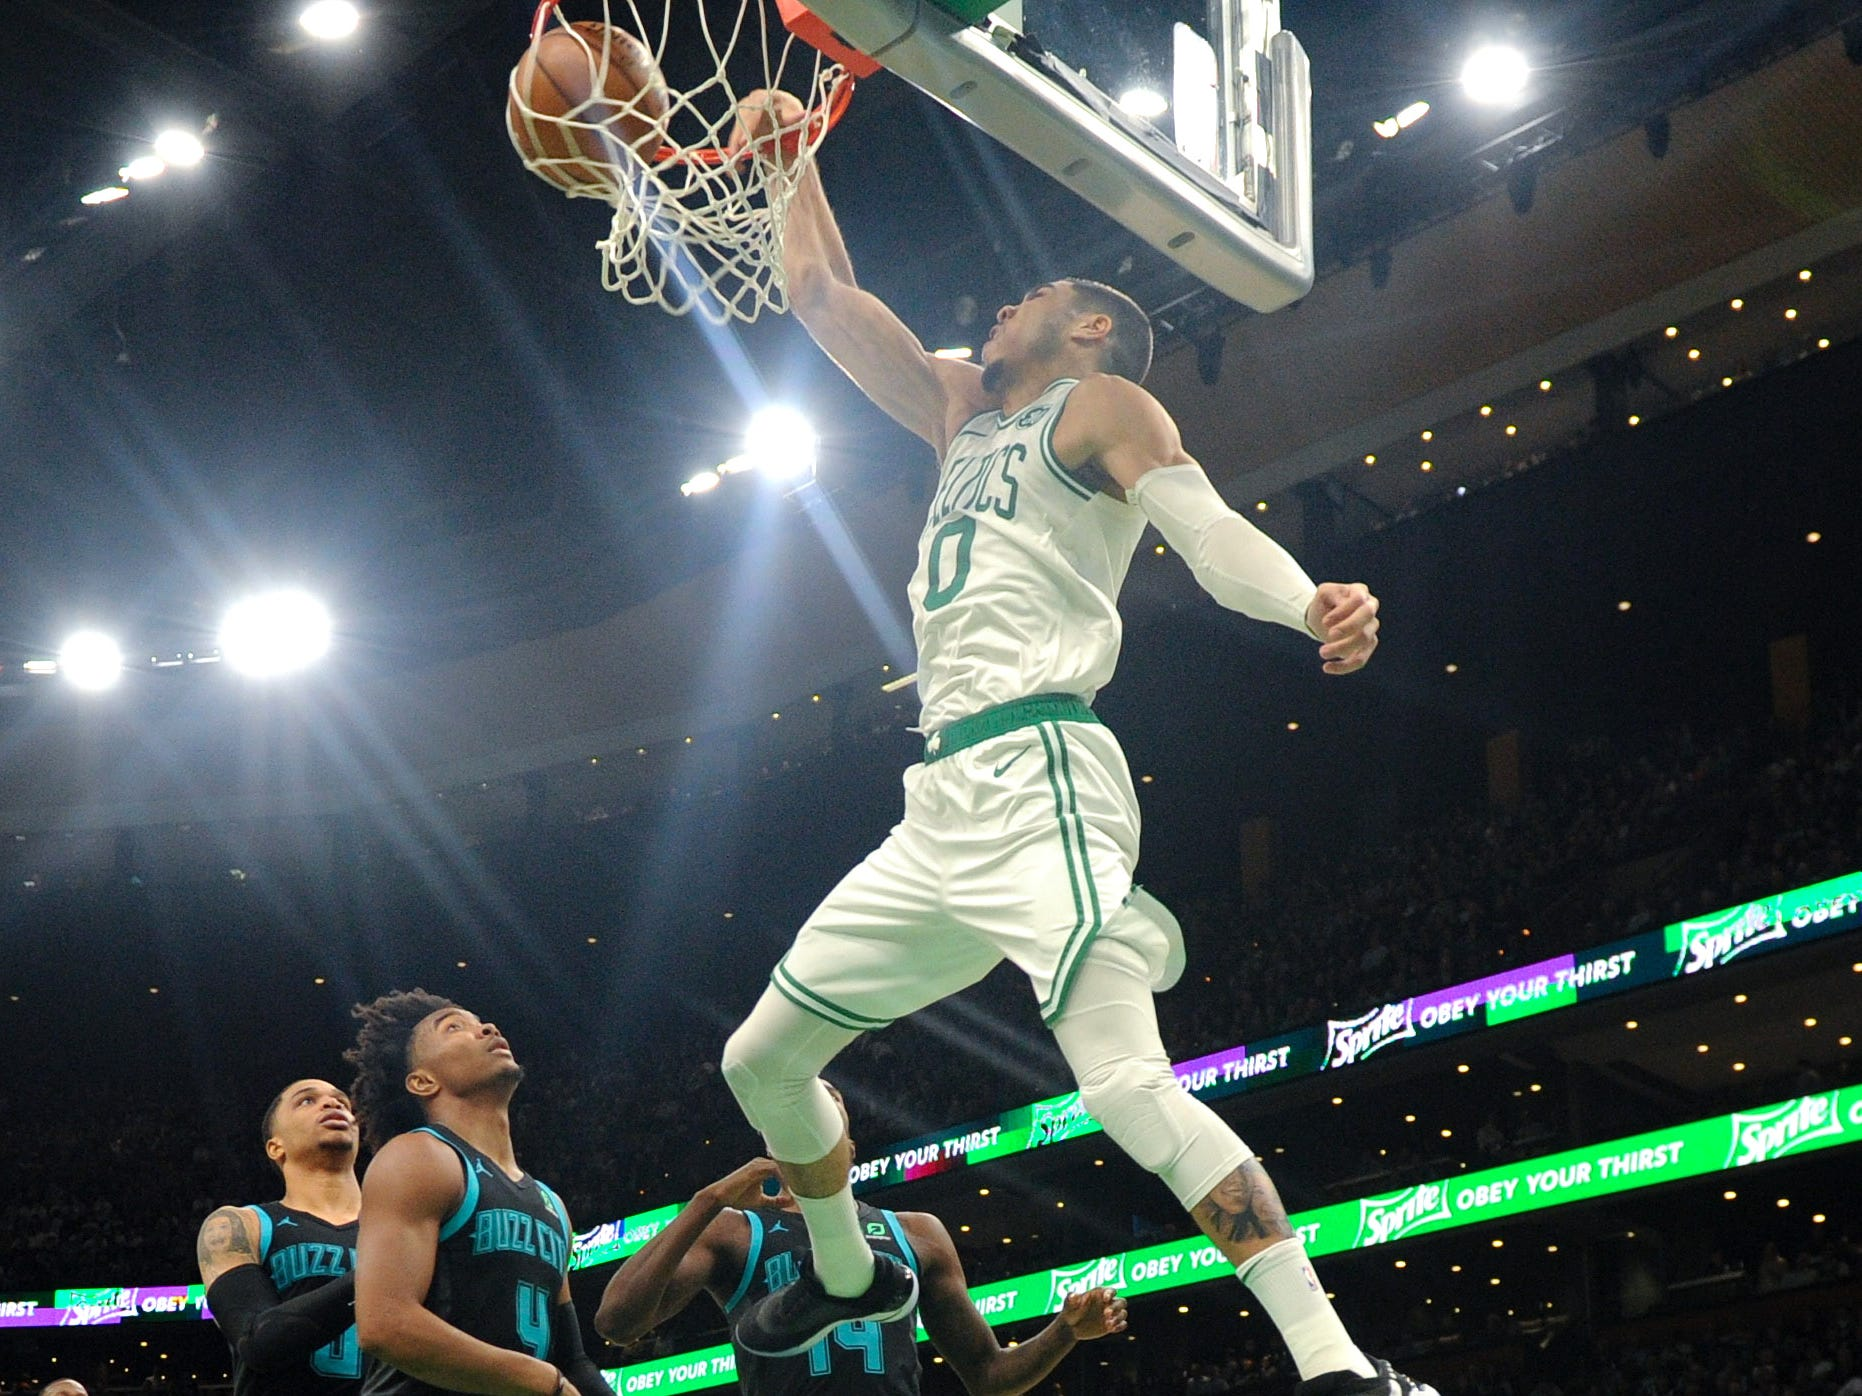 Jan. 30: Celtics forward Jayson Tatum finishes off the one-handed alley-oop against the Hornets in Boston.